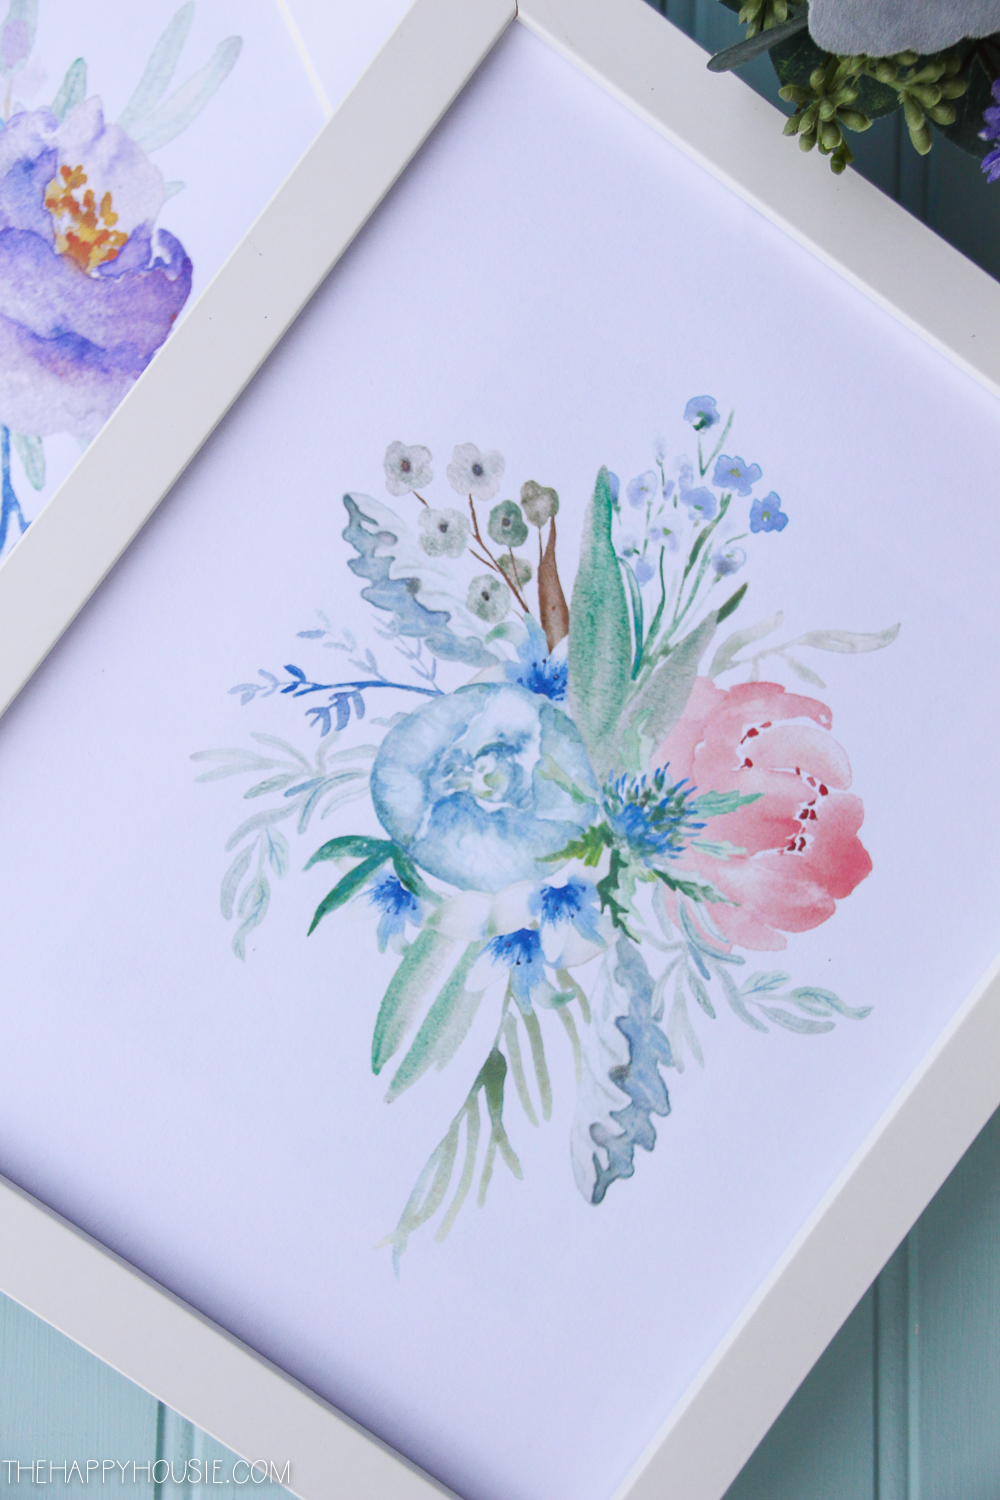 Free Printable Watercolor Pictures To Paint